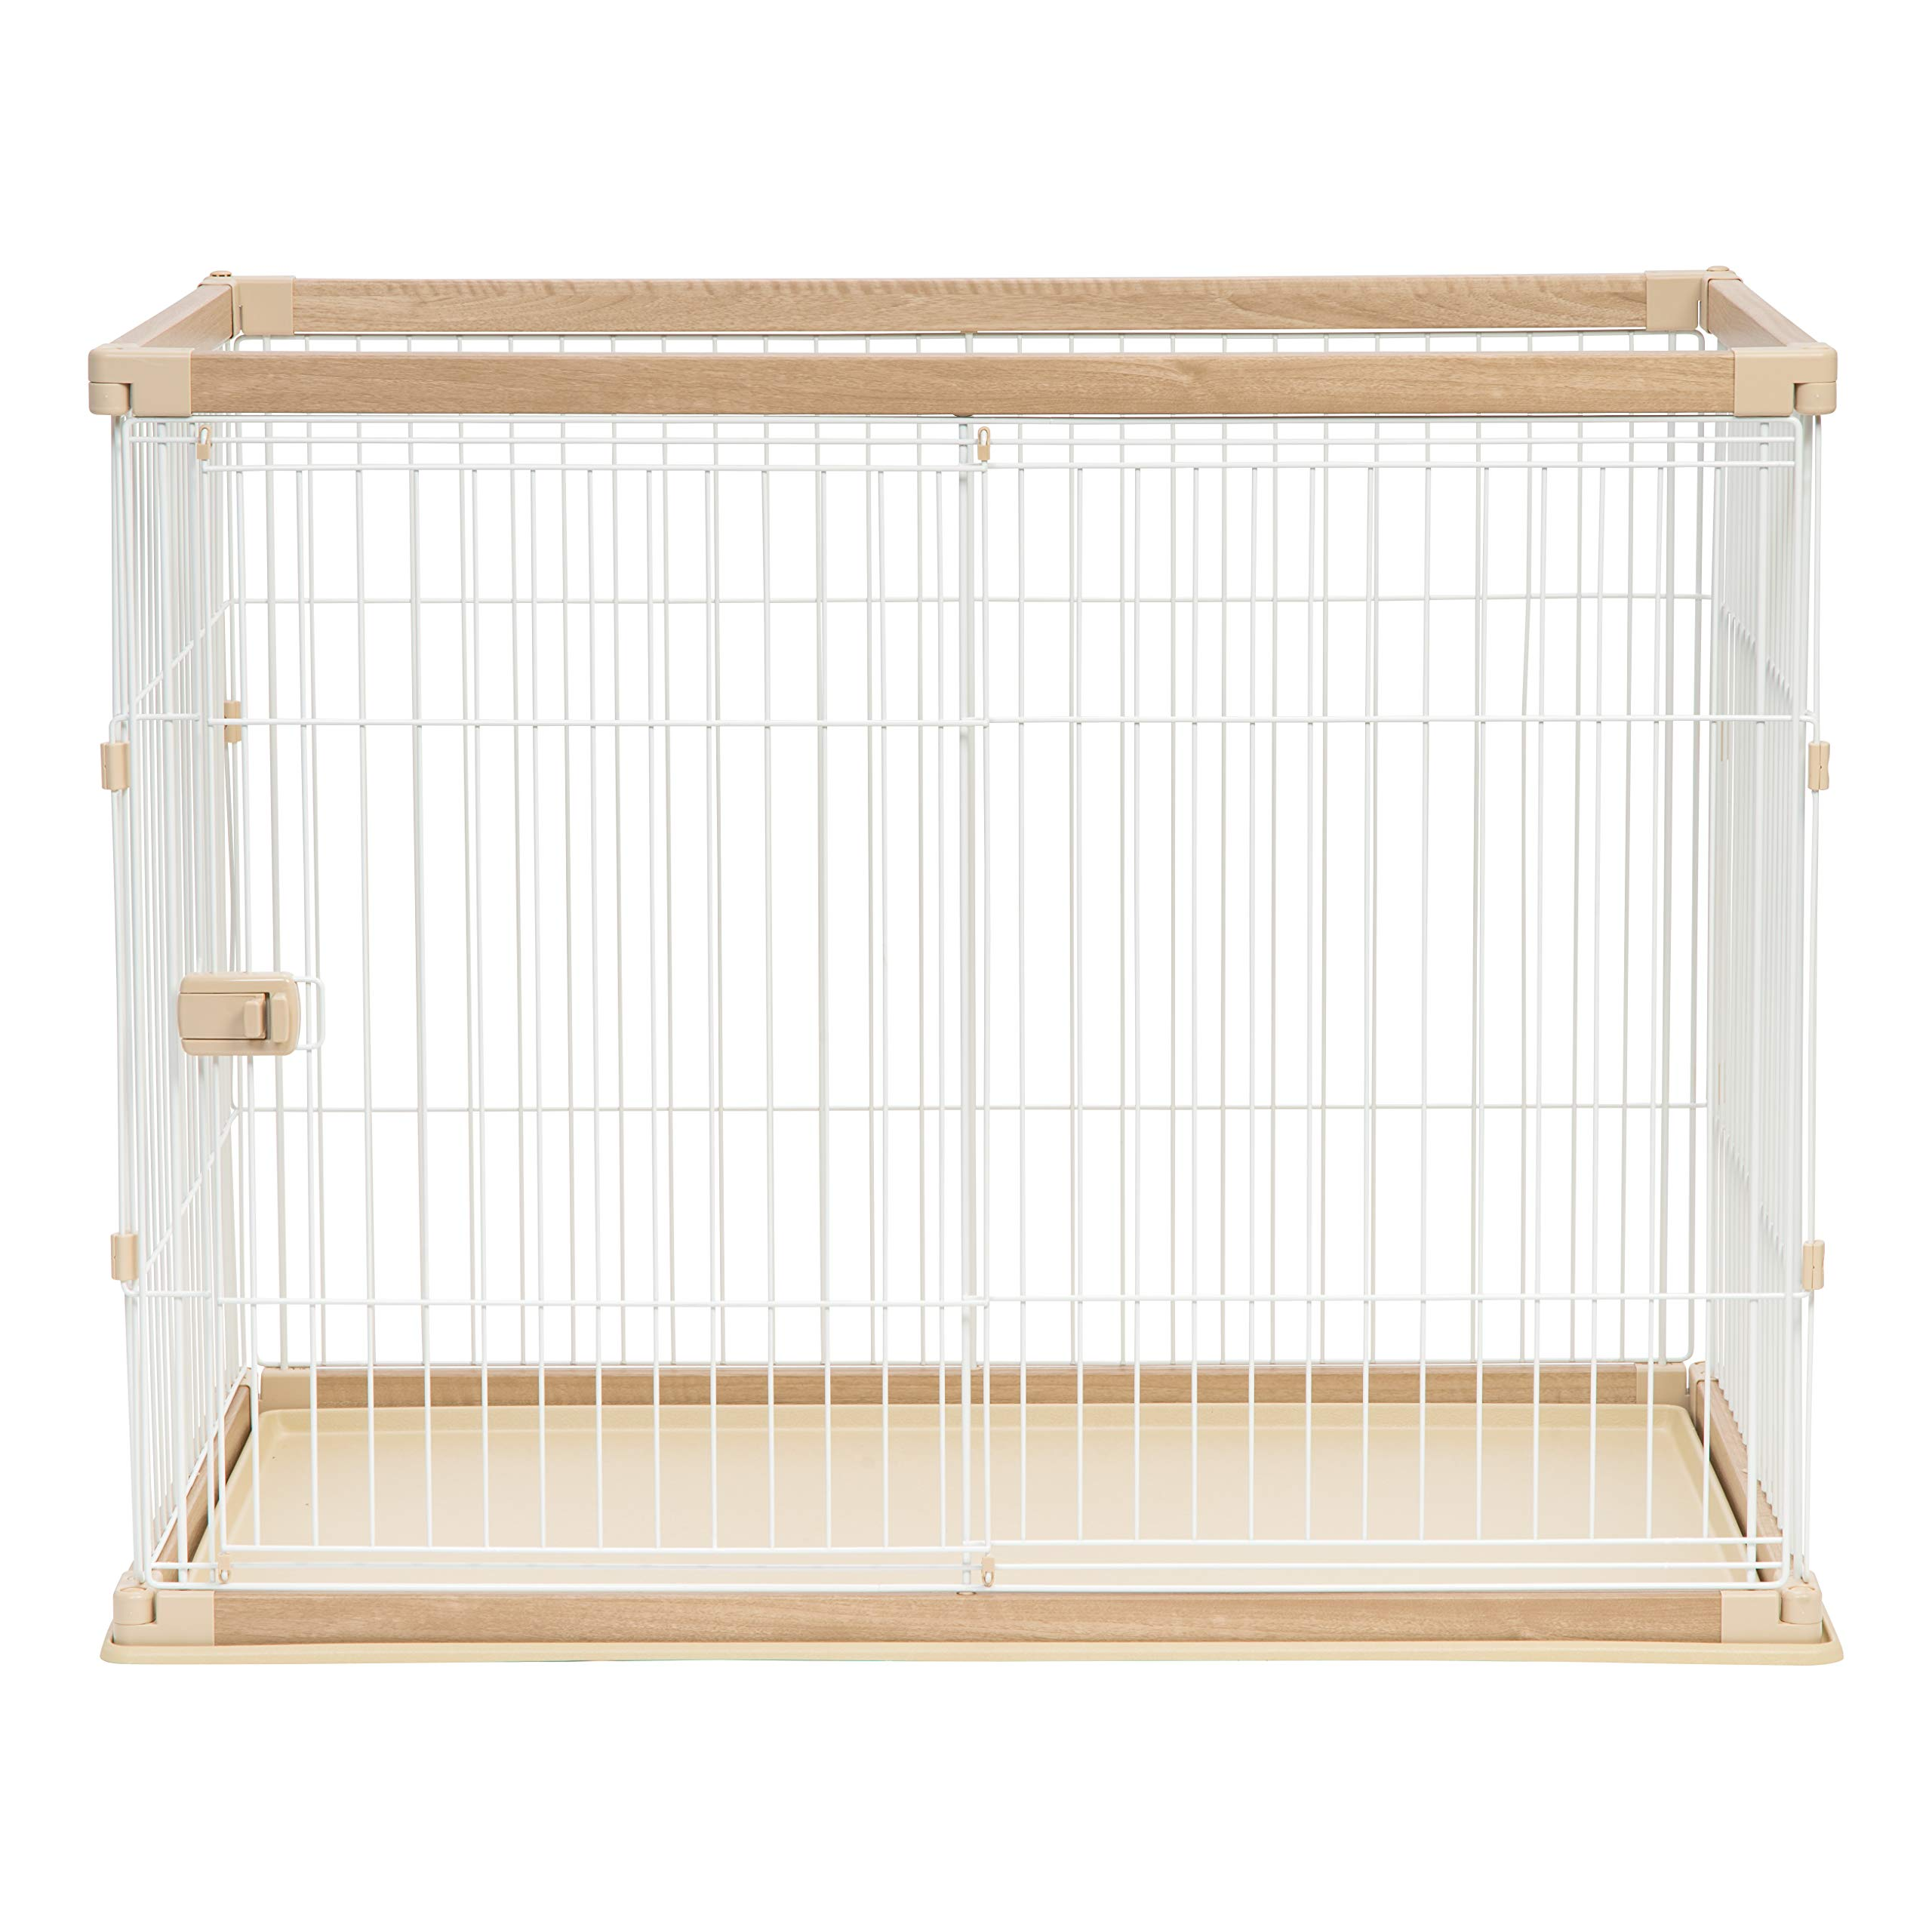 IRIS Extra Tall Wire Open Pet Pen, Brown/White